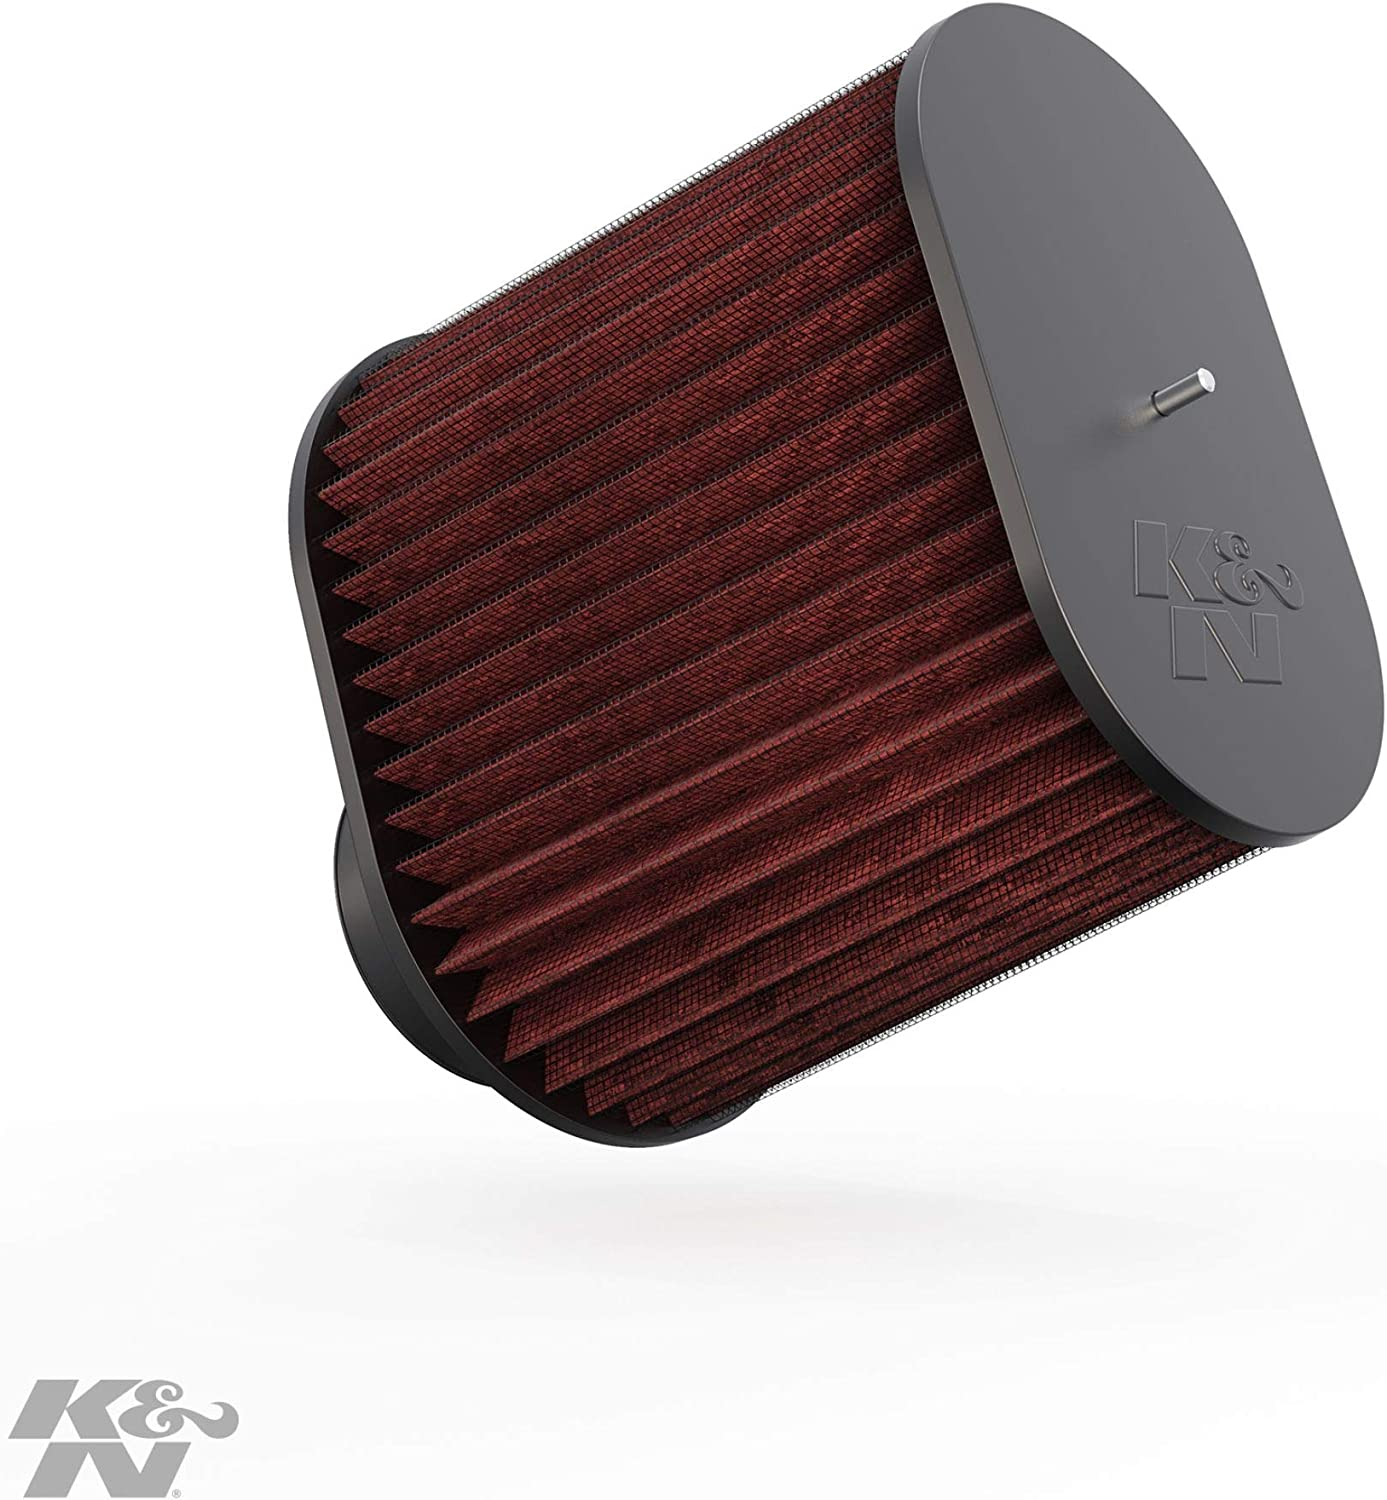 K&N Universal Clamp-On Air Filter: High Performance, Premium, Replacement Engine Filter: Flange Diameter: 4 In, Filter Height: 8.9375 In, Flange Length: 1.875 In, Shape: Oval Straight, RC-5102,Heather Red